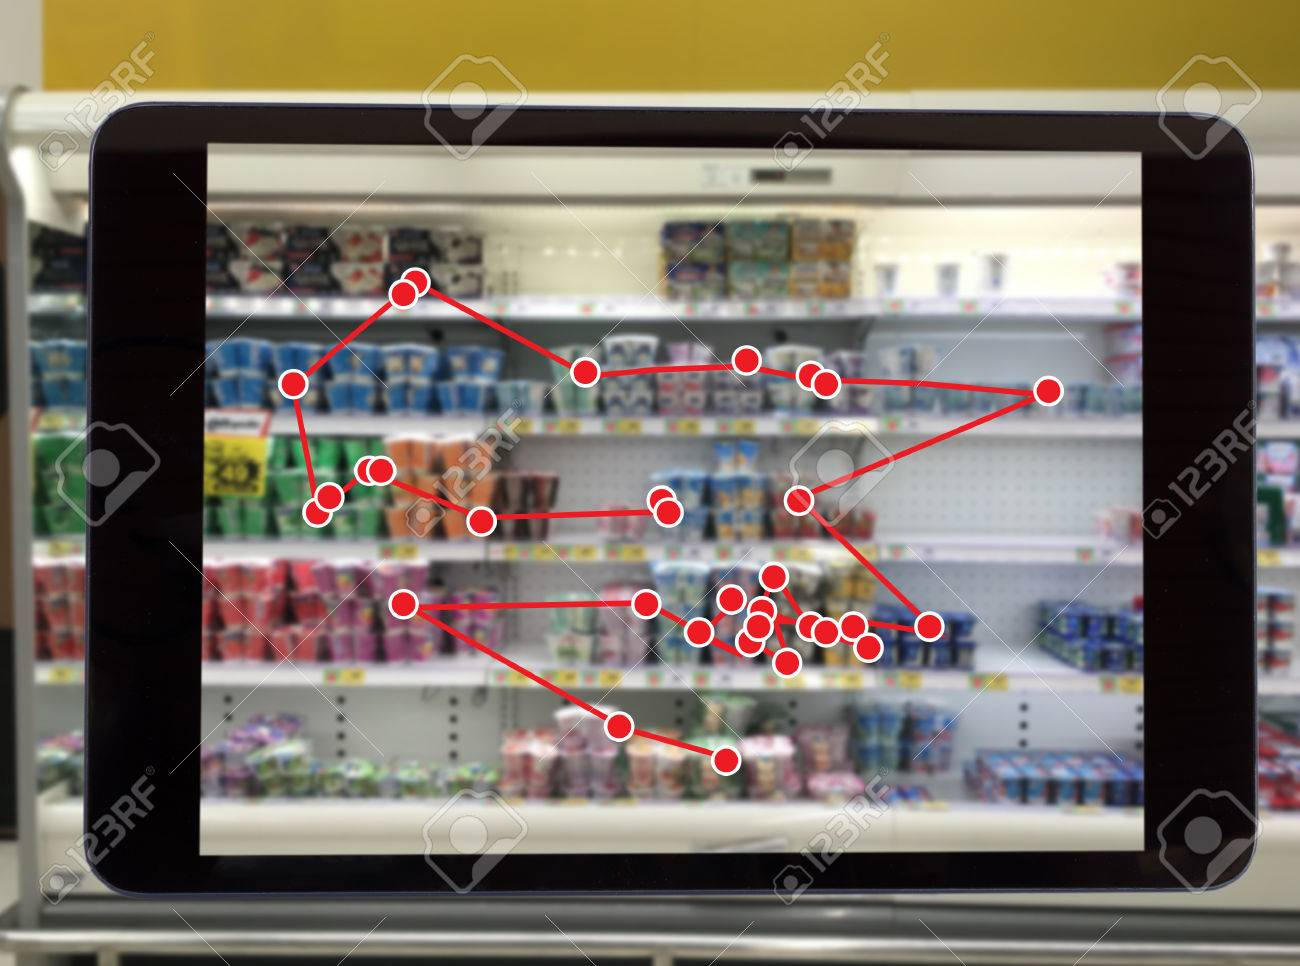 smart retail concept, robot service use for check the data of or Stores that stock goods on shelves with easily-viewed barcode and prices or photo compared against an idealized representation of store - 86500682